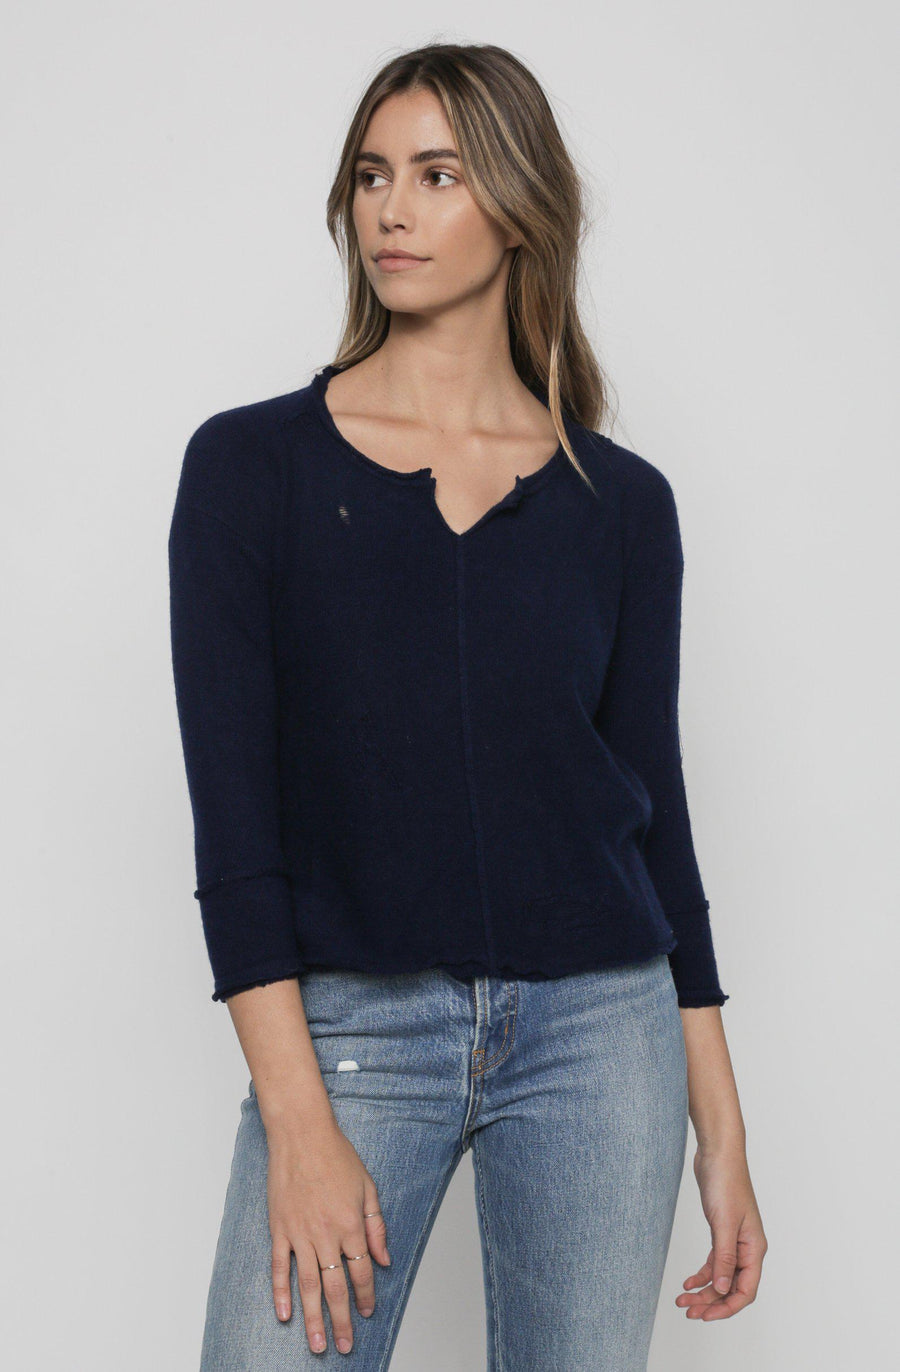 Drifter Sweater - Navy